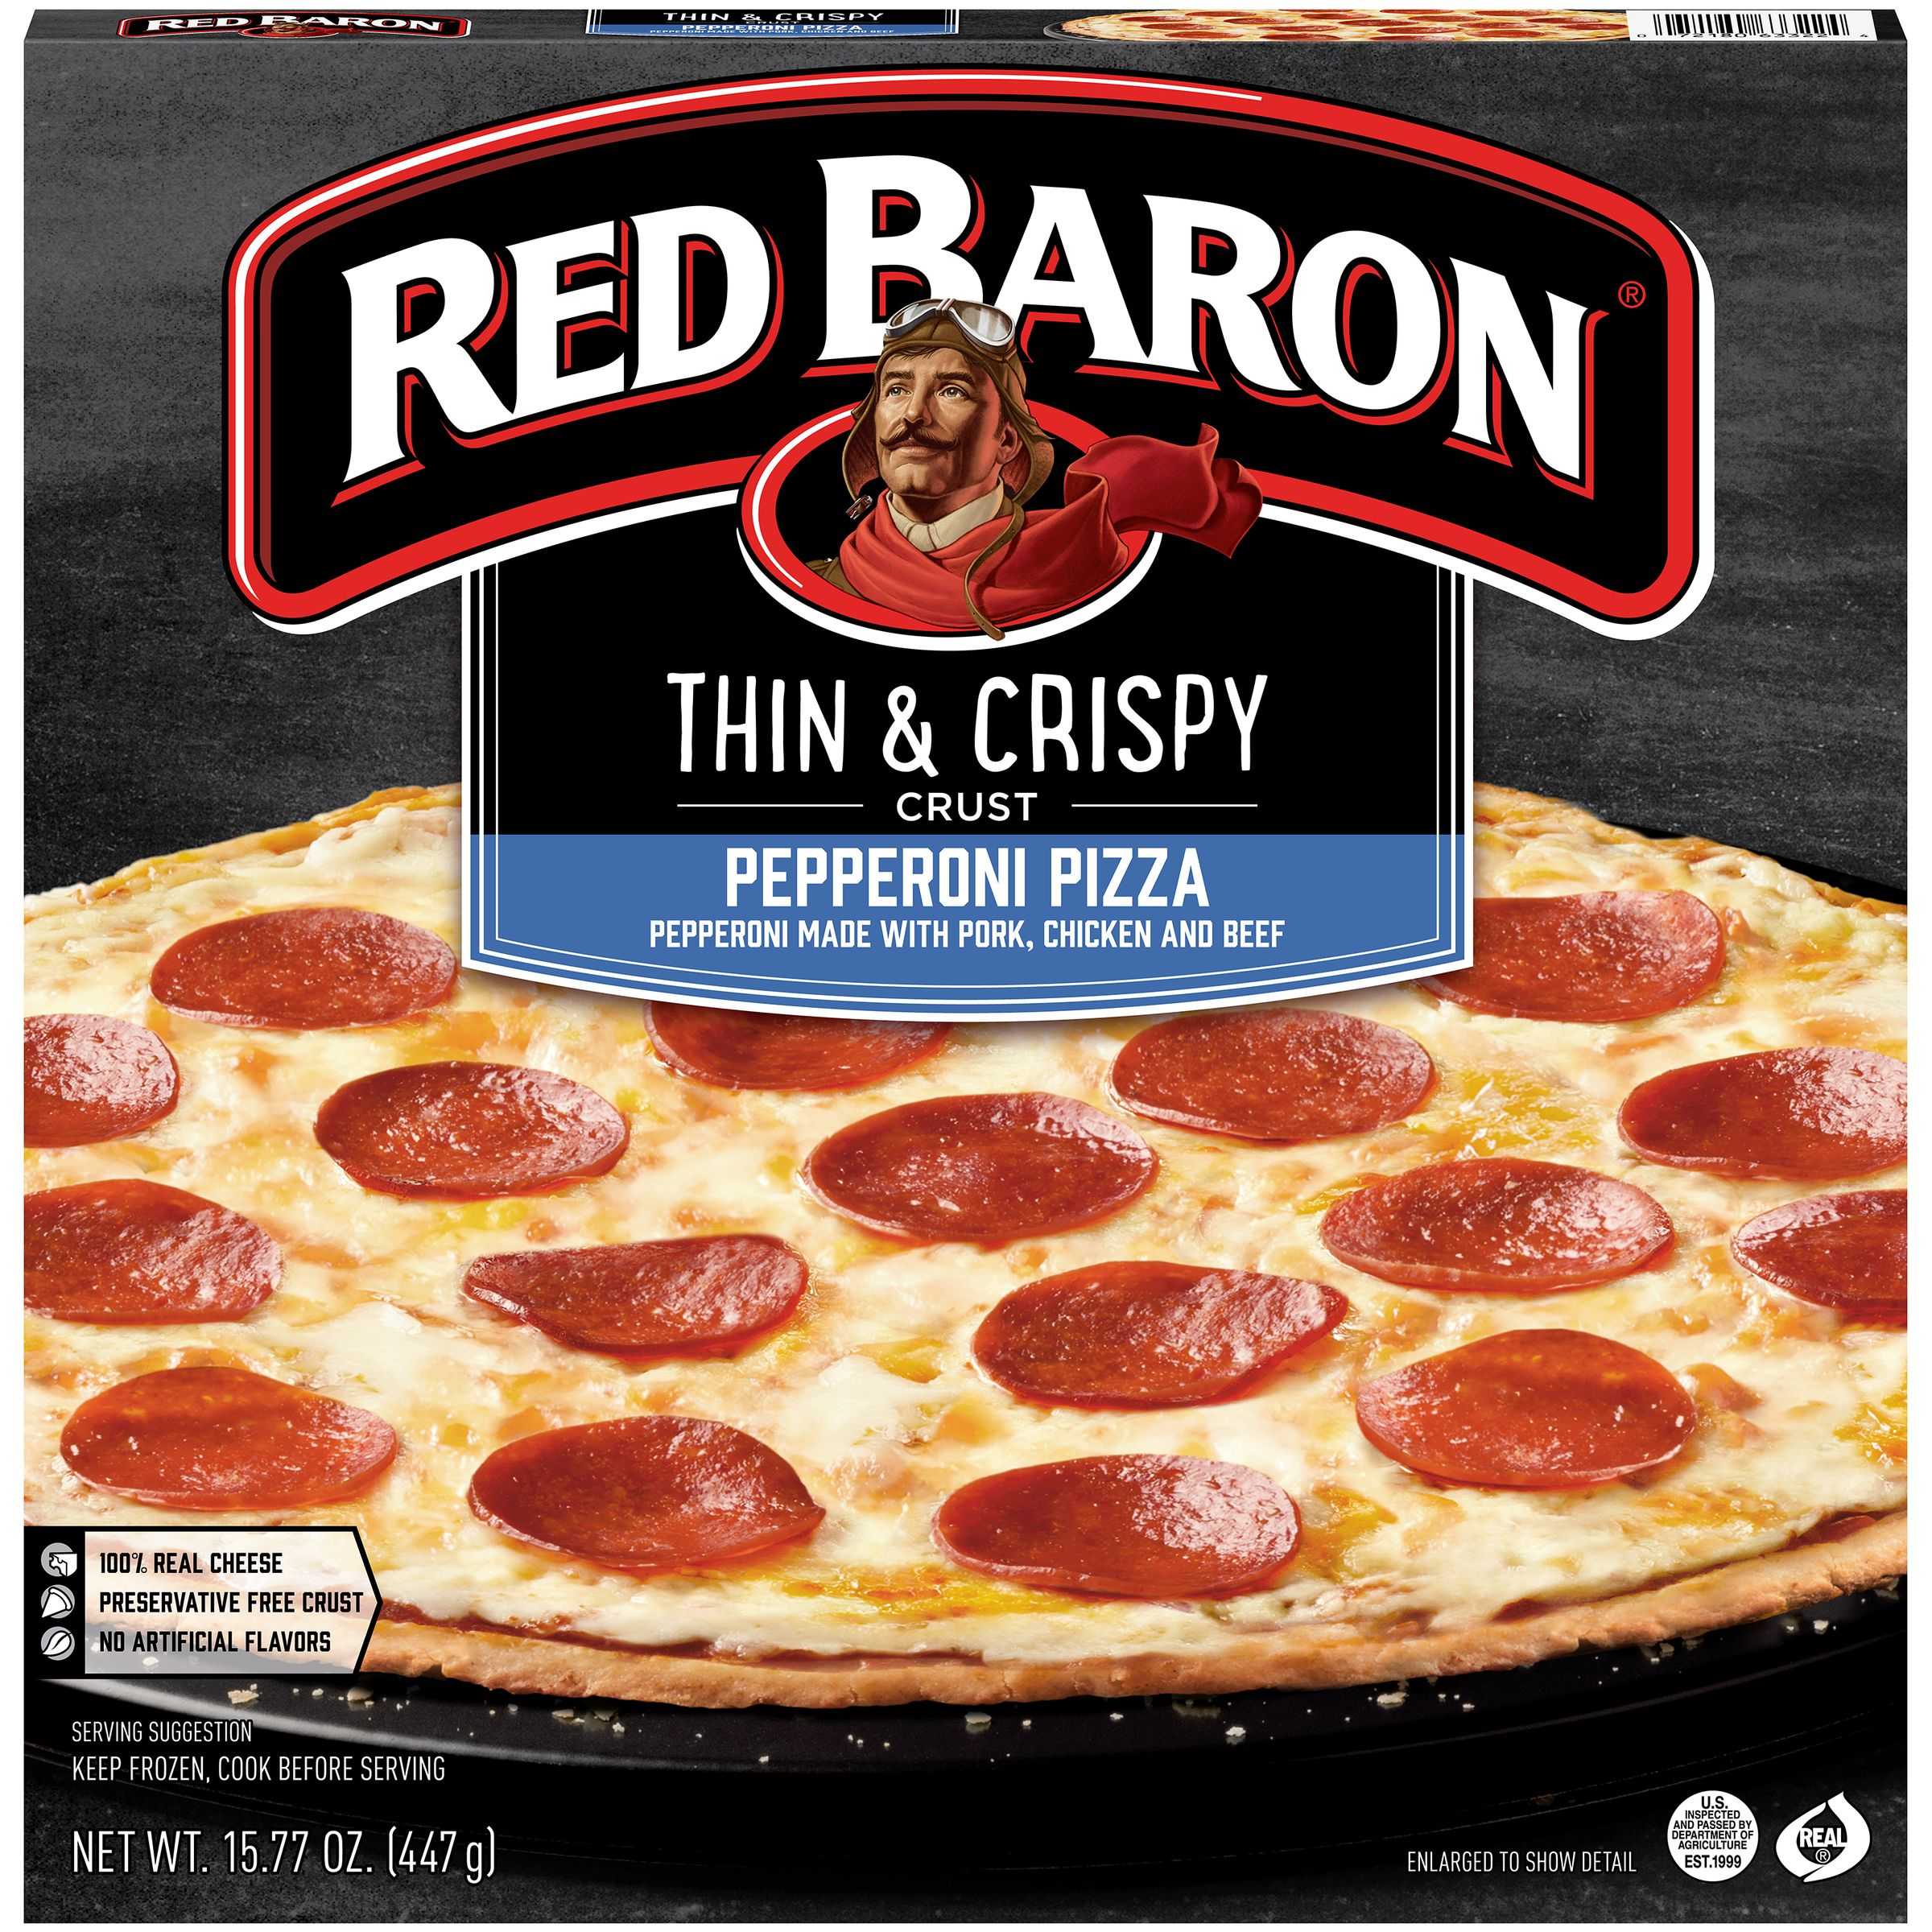 Red Baron® Thin & Crispy Crust Pepperoni Pizza 15.77 oz. Box